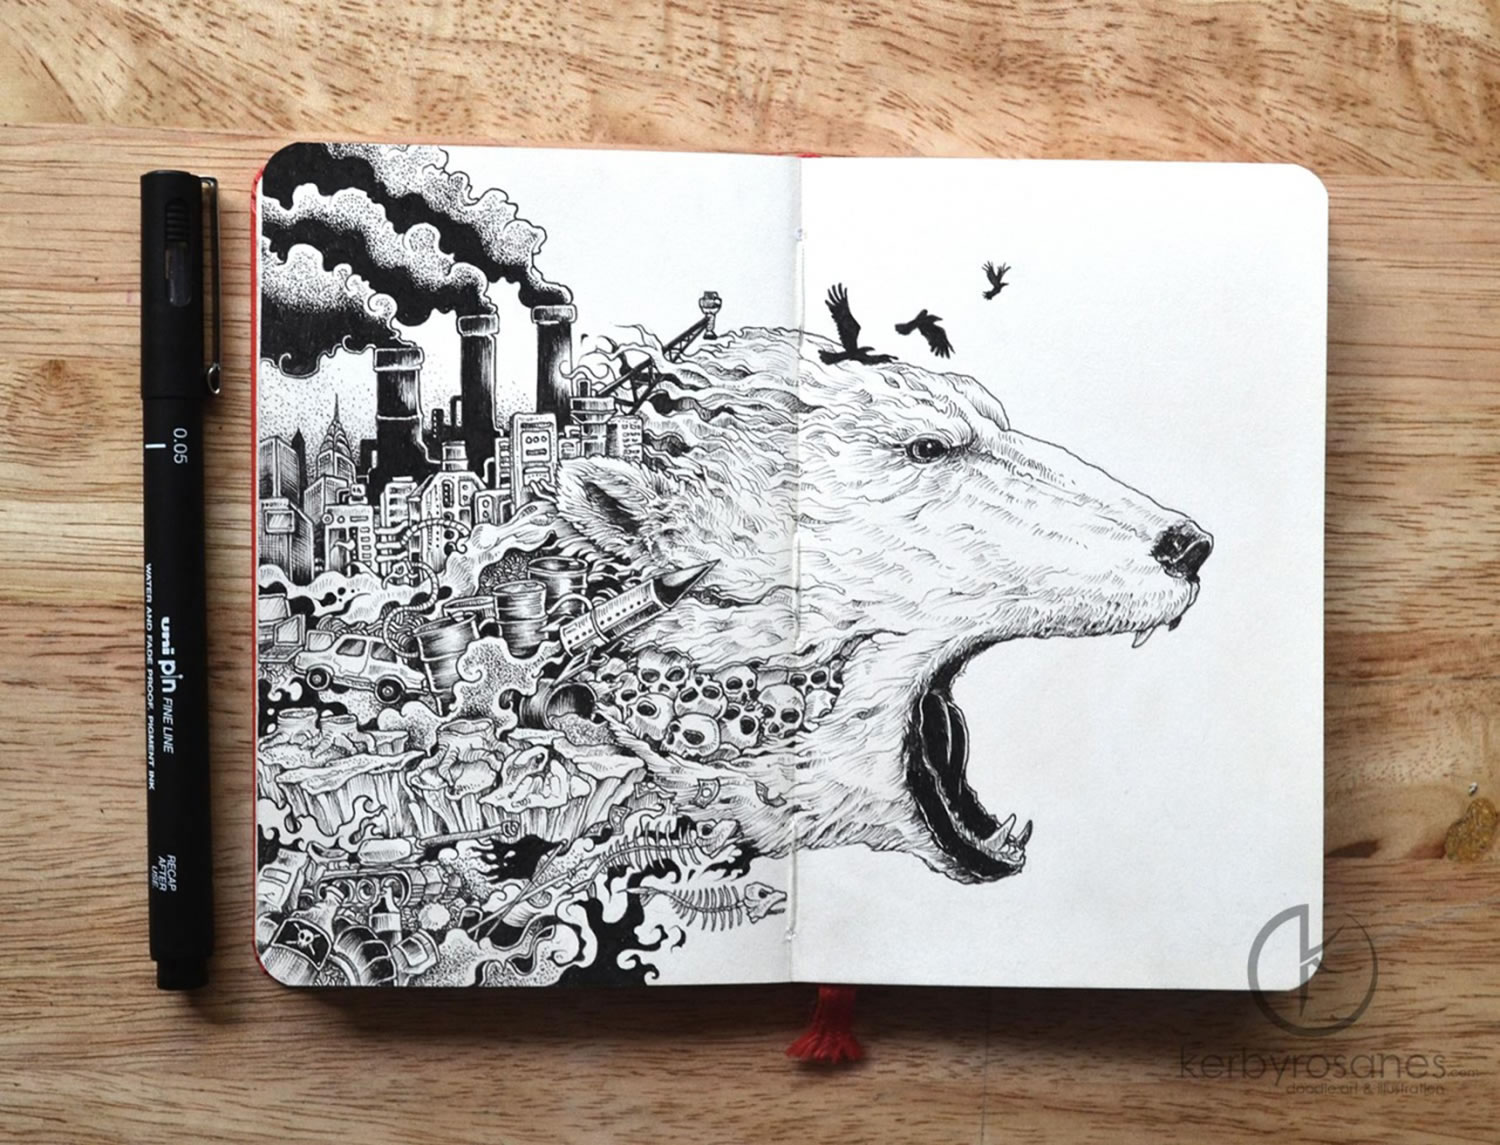 meltdown, factory sheep drawing